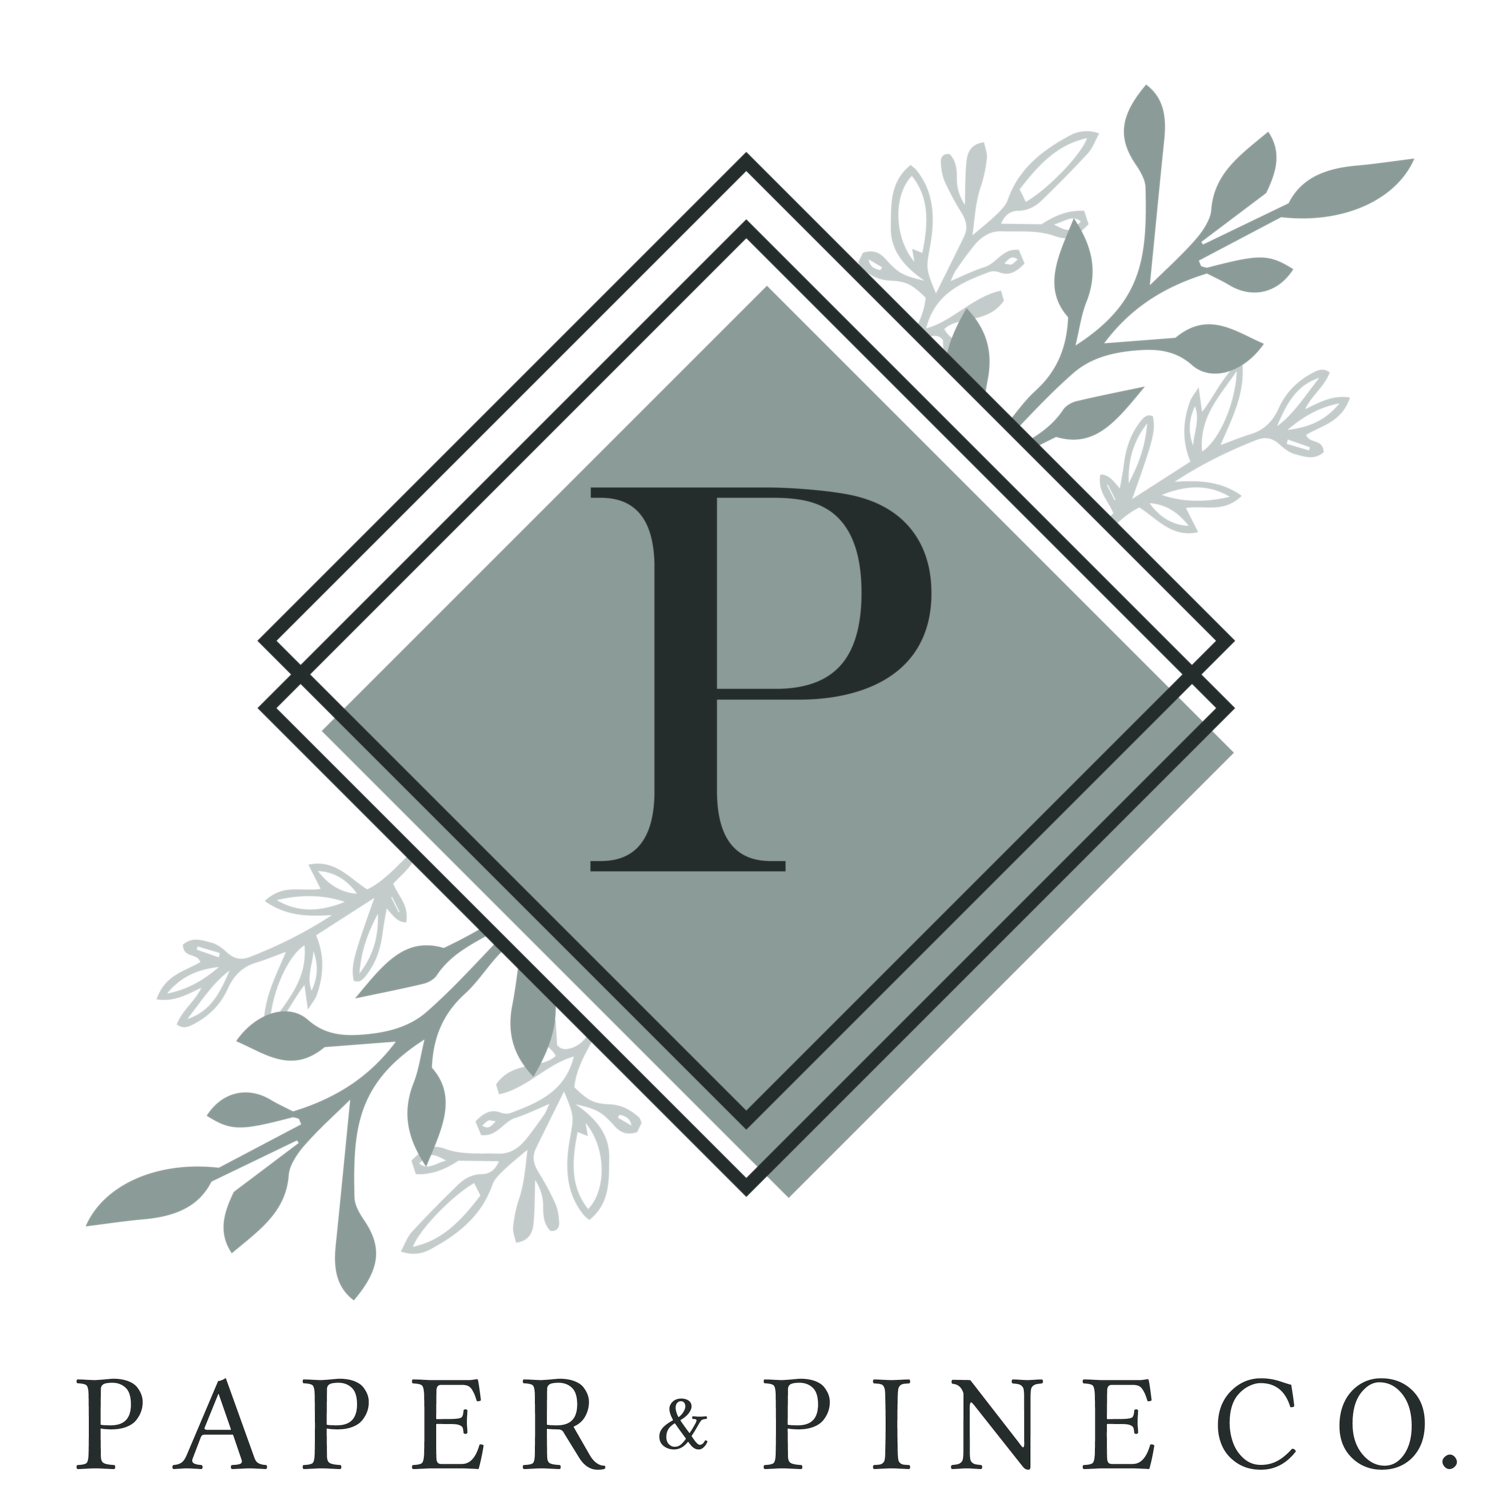 Paper and Pine Co.